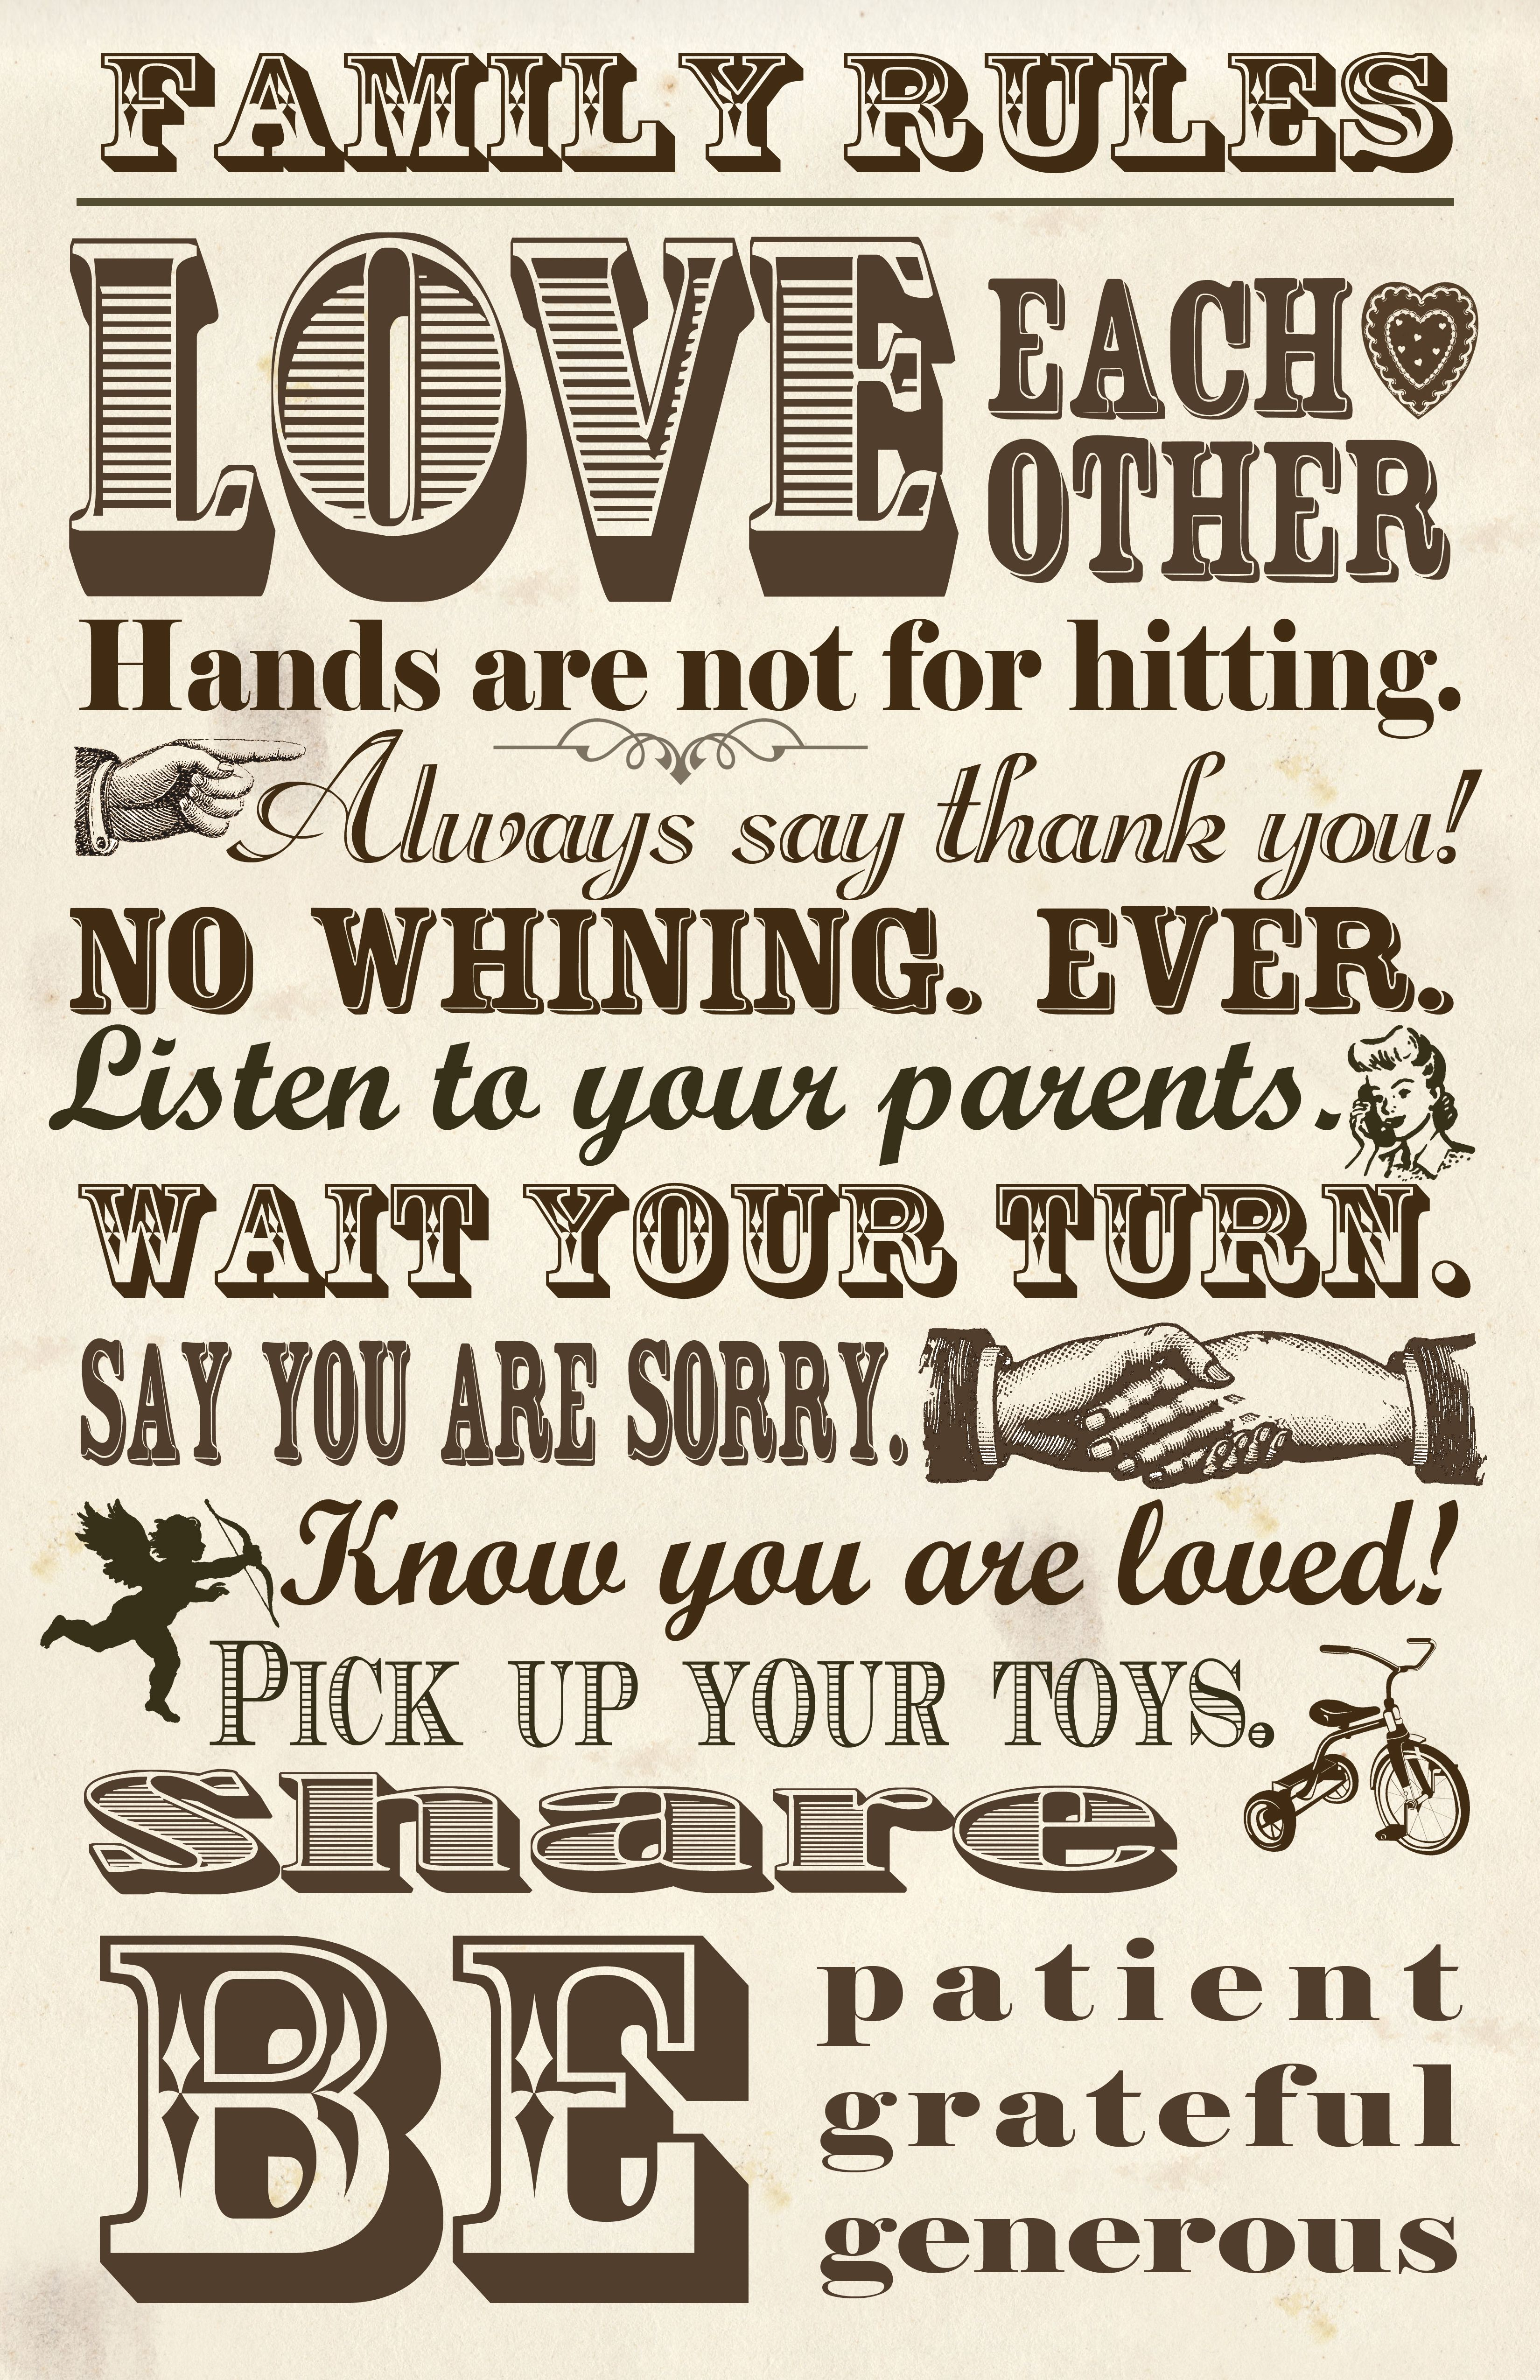 FAMILY RULES 3 LIFE INSPIRATIONAL PRINT // MOTIVATIONAL QUOTE POSTER